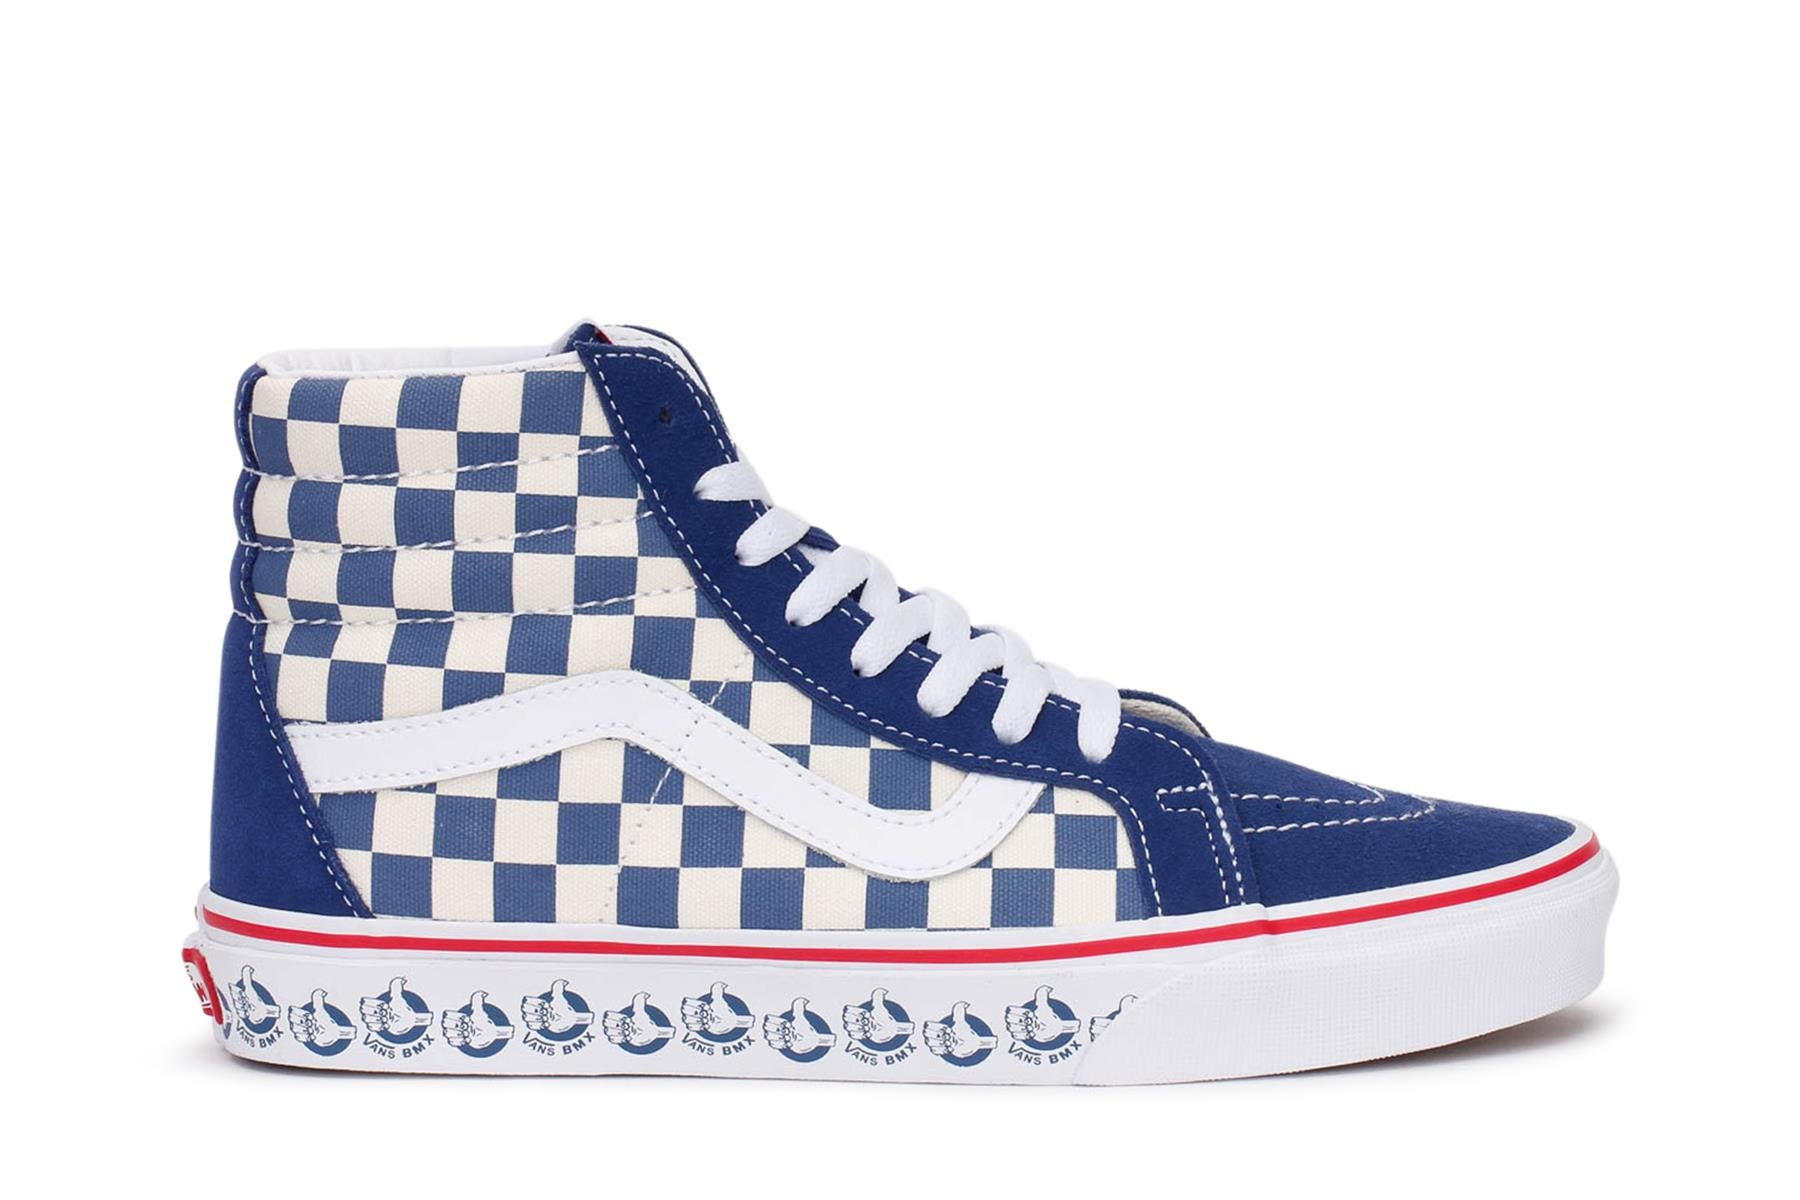 vans-mens-sneakers-sk8-hi-reissue-true-navy-white-vn0a4bv8v3x-main